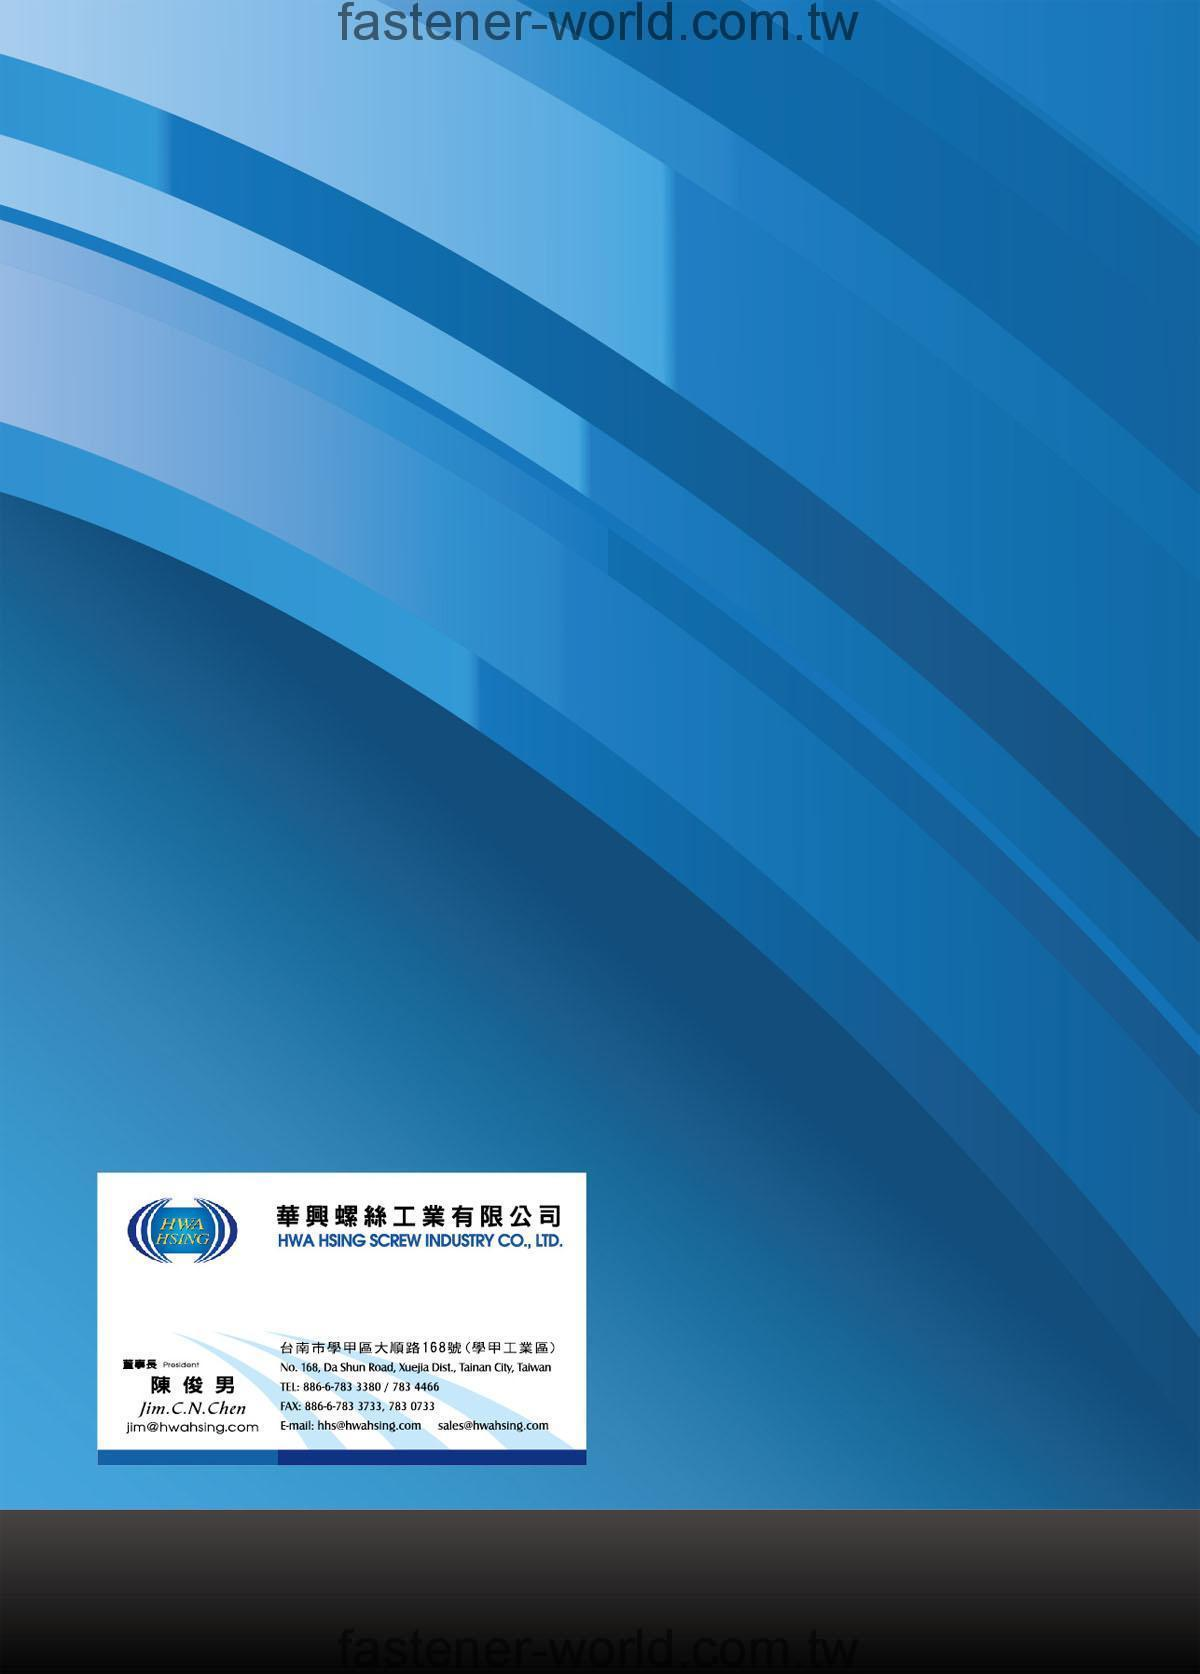 HWA HSING SCREW INDUSTRY CO., LTD.  Online Catalogues